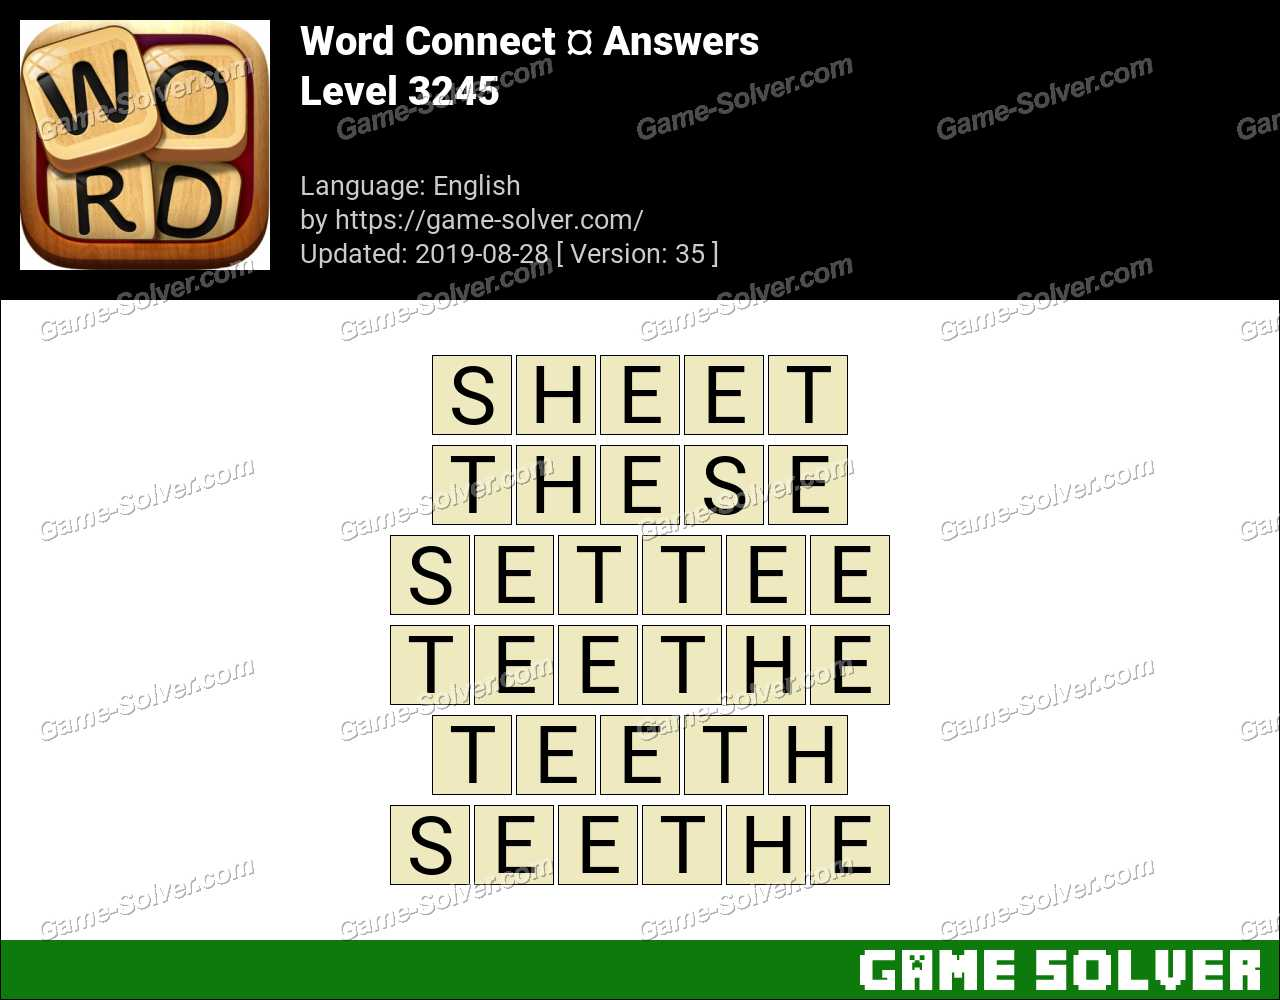 Word Connect Level 3245 Answers